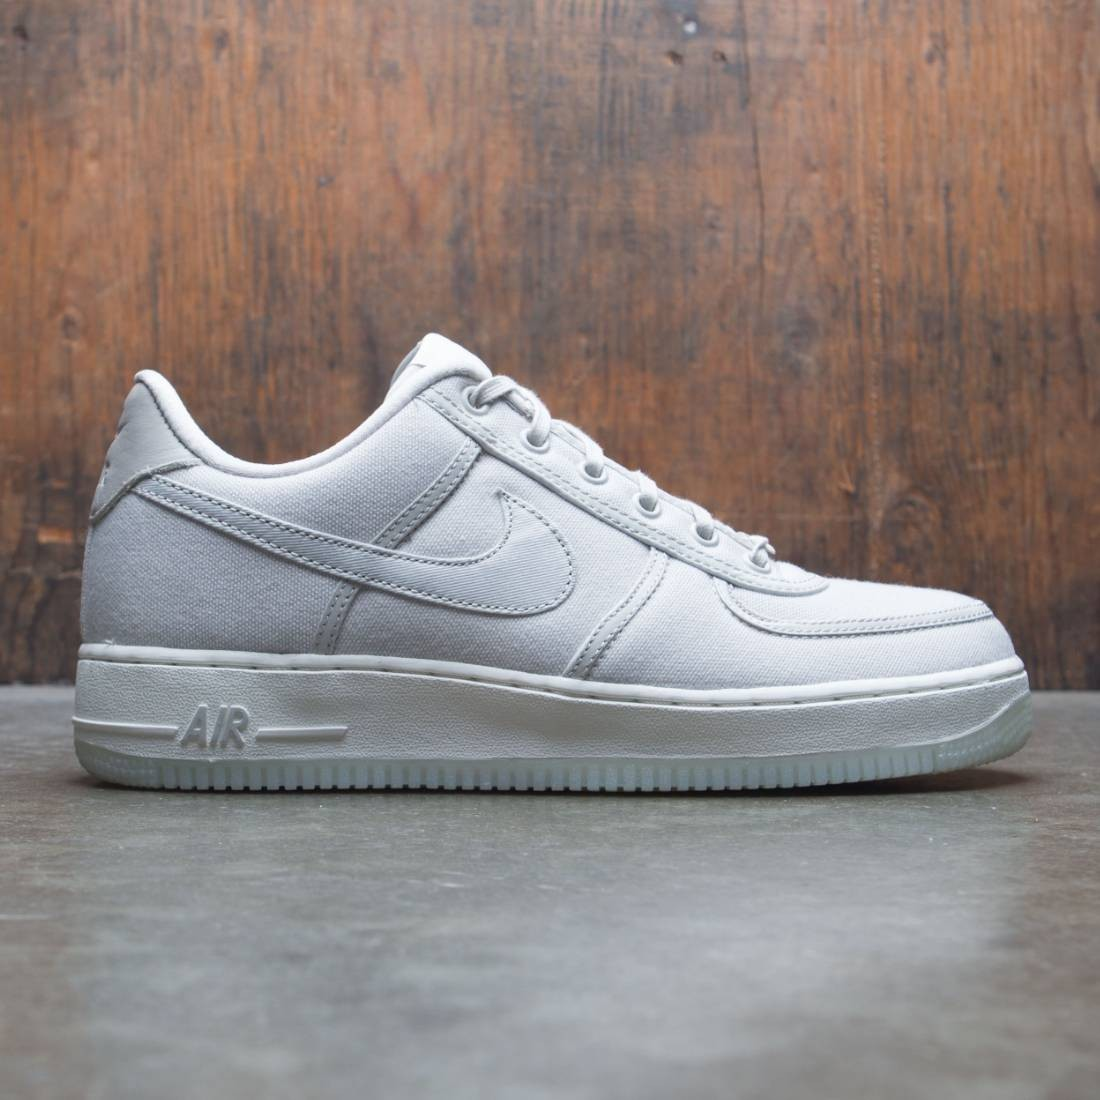 nike men air force 1 low retro qs canvas light bone light bone sail 3415489fa